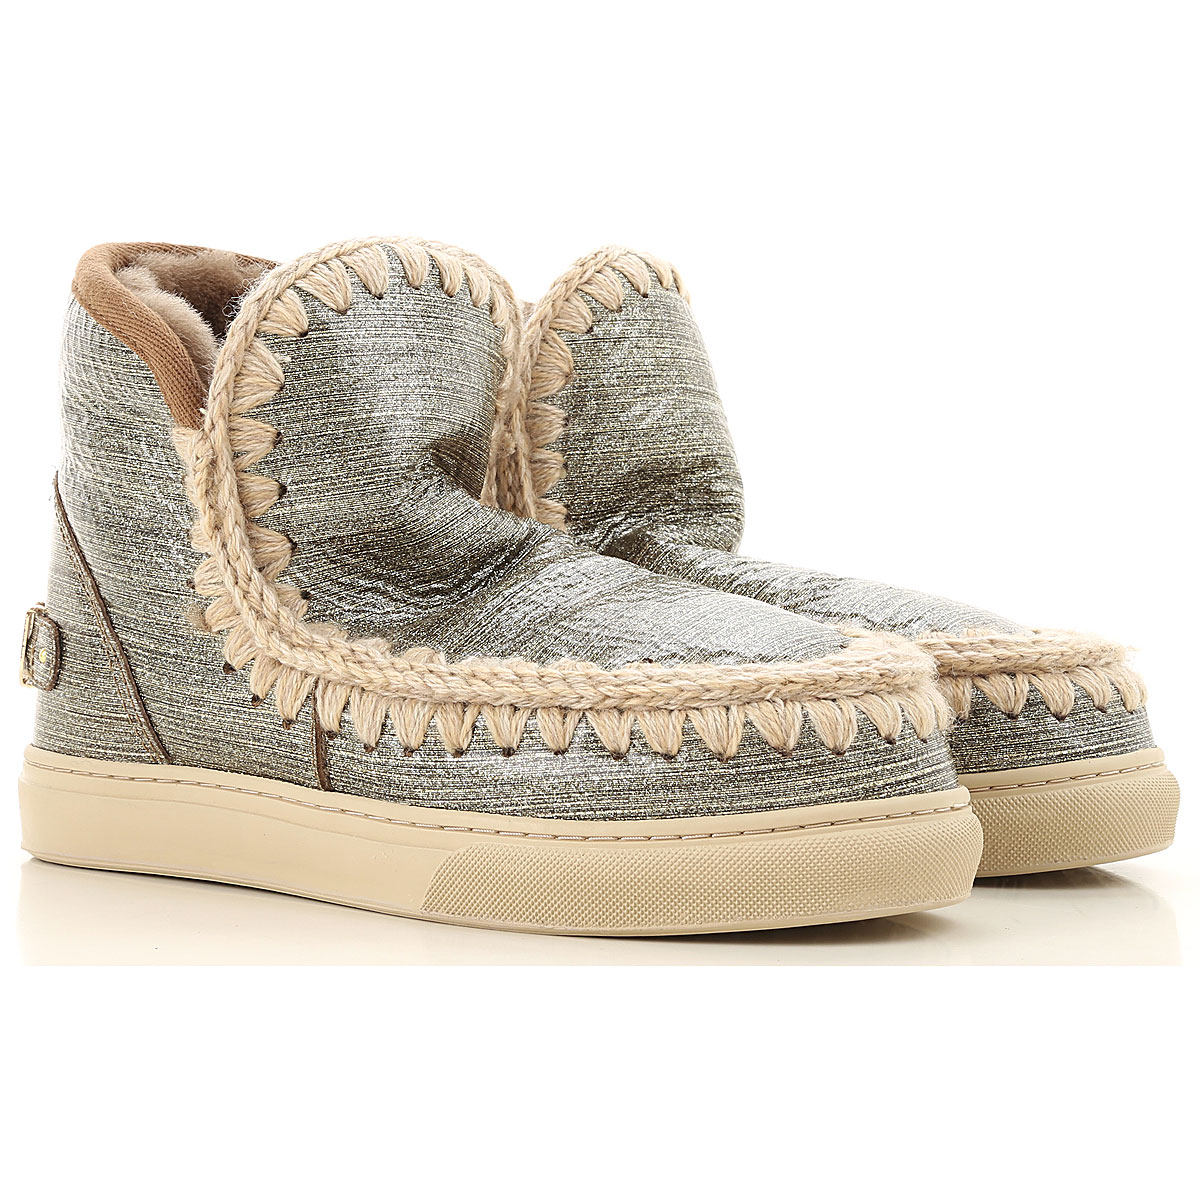 Mou Boots for Women, Booties On Sale, Metallic Gold, Leather, 2019, Eu 35 EUR 36 - UK 3 - USA 5.5 EUR 37 - UK 4 - USA 6.5 EUR 38 - UK 5 - USA 7.5 EUR